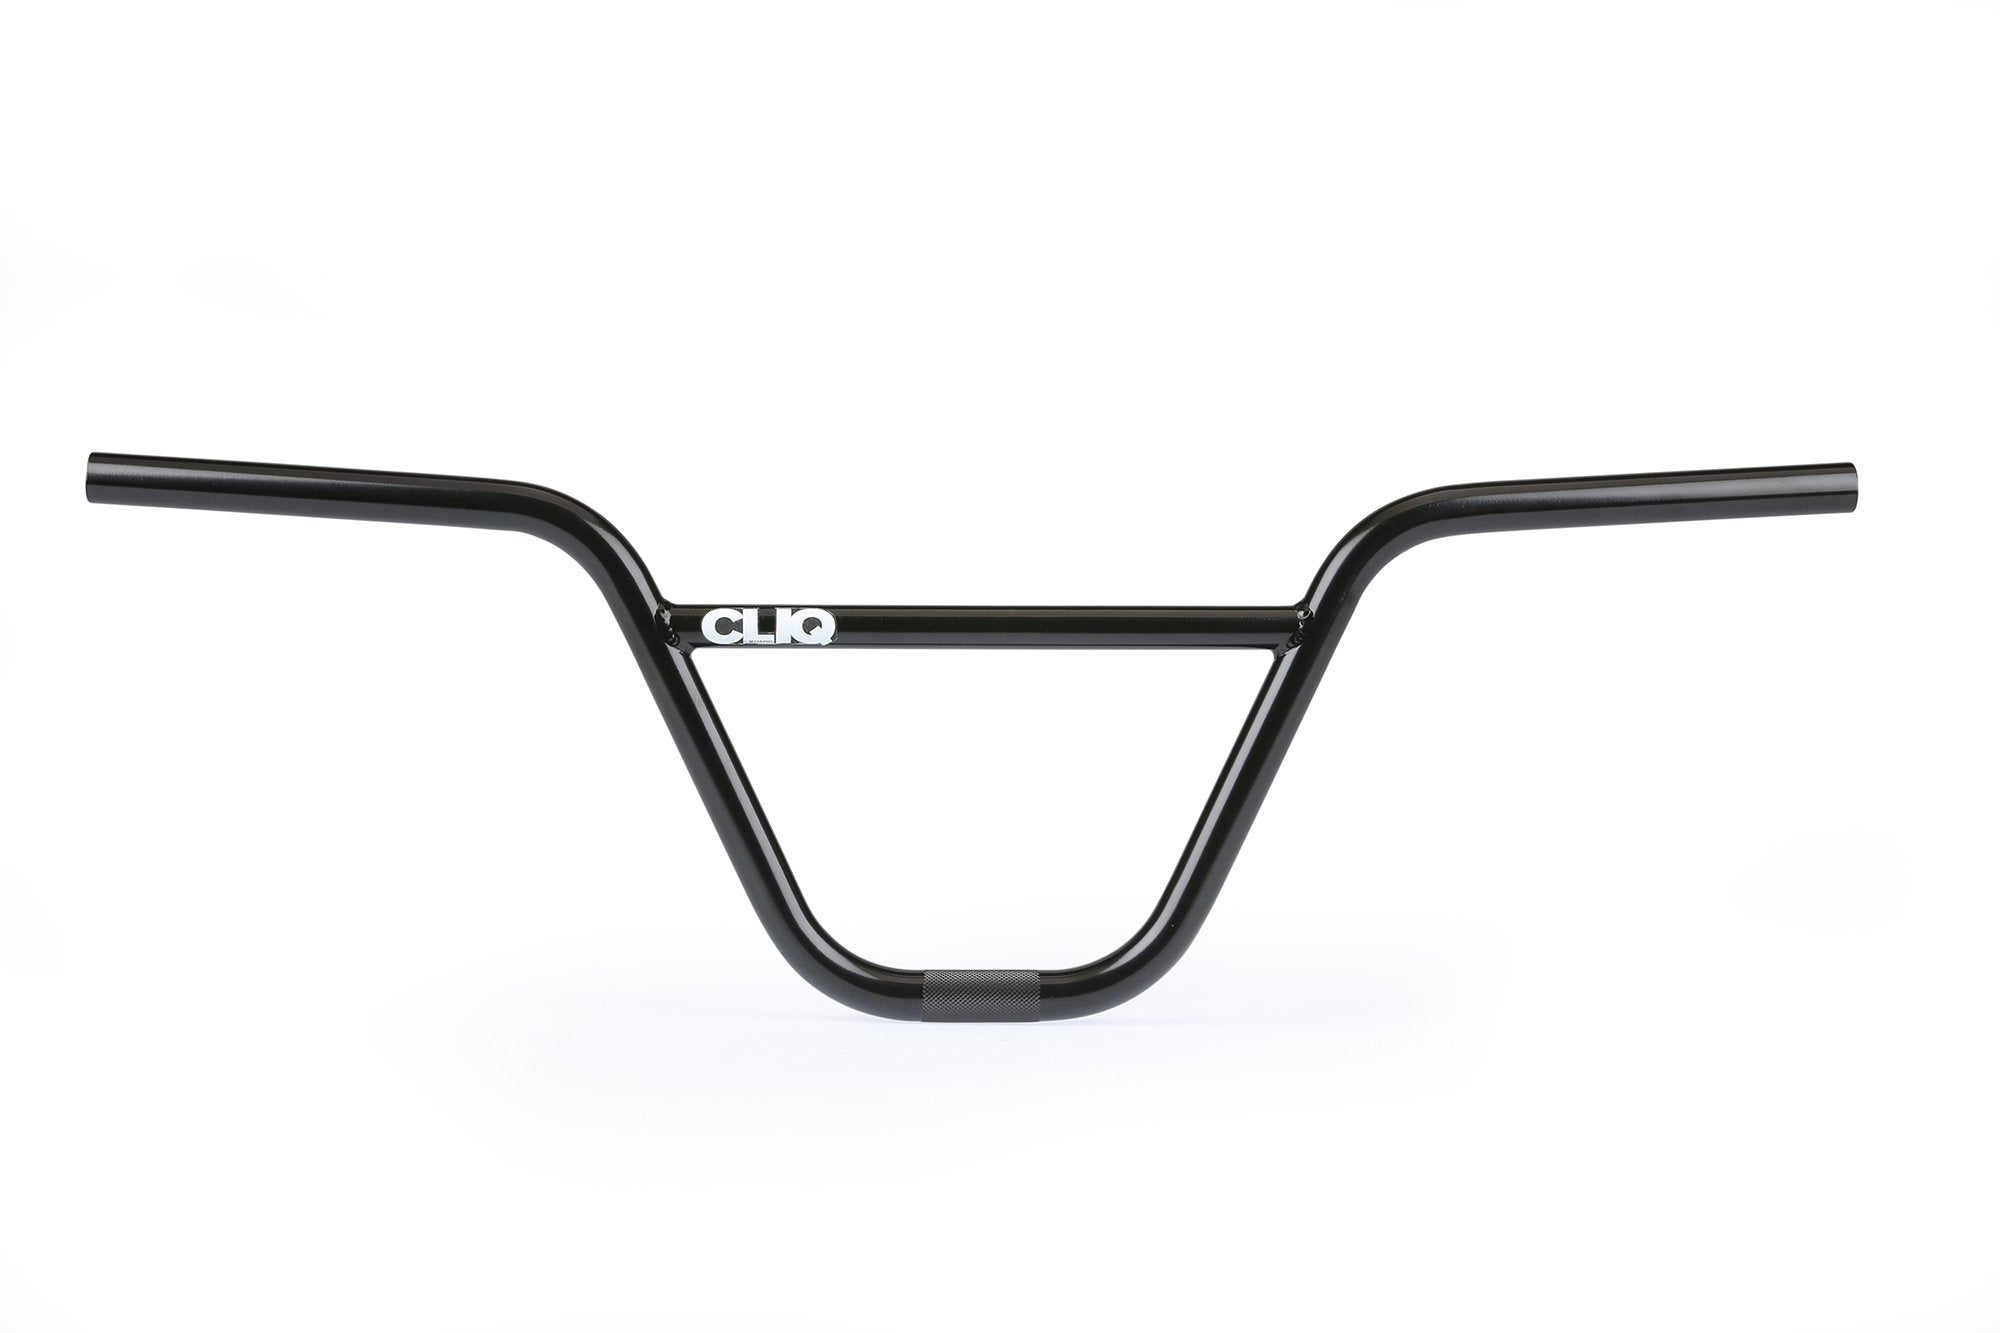 "Cliq Addict 2pc BMX Handlebars - 8.25"" - Black - Made by Haro"